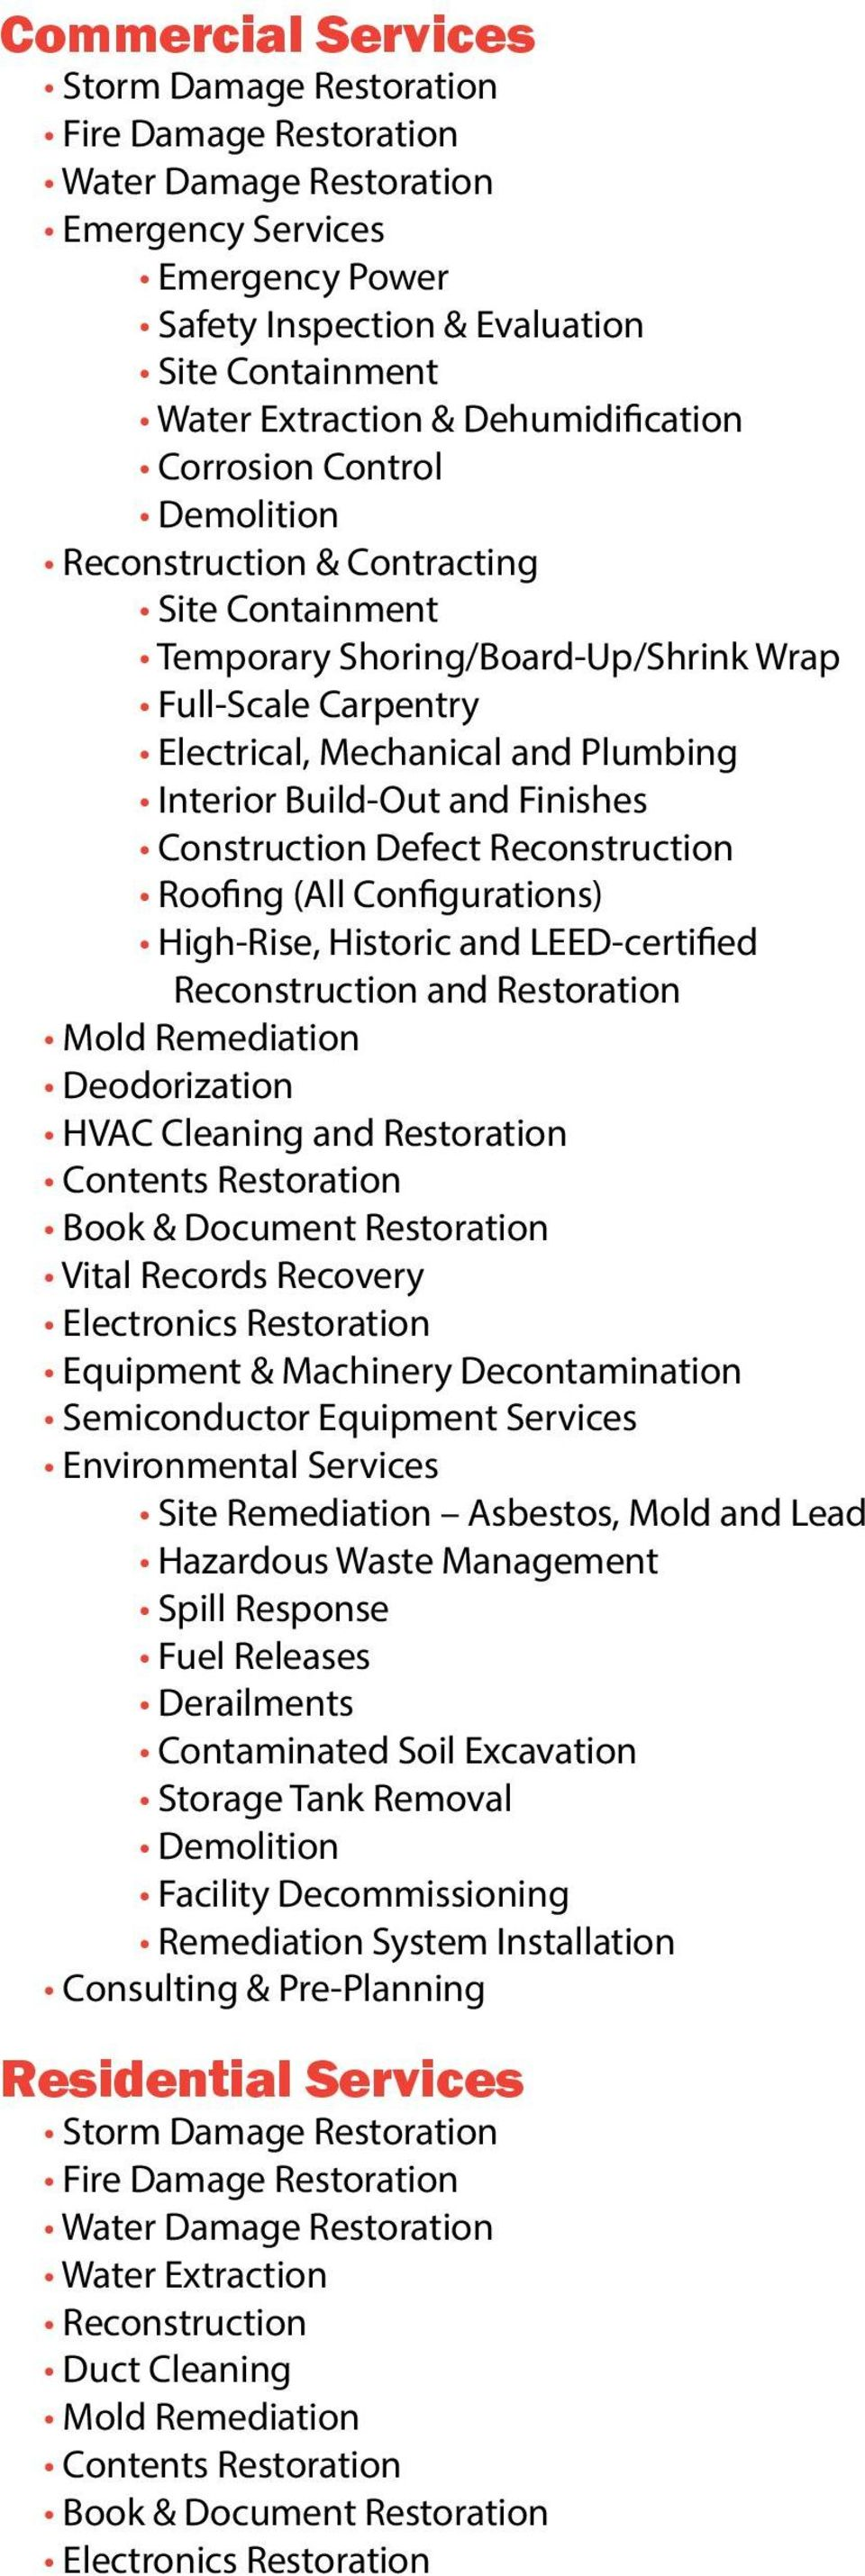 Historic and LEED-certified Reconstruction and Restoration Deodorization HVAC Cleaning and Restoration Vital Records Recovery Equipment & Machinery Decontamination Semiconductor Equipment Services